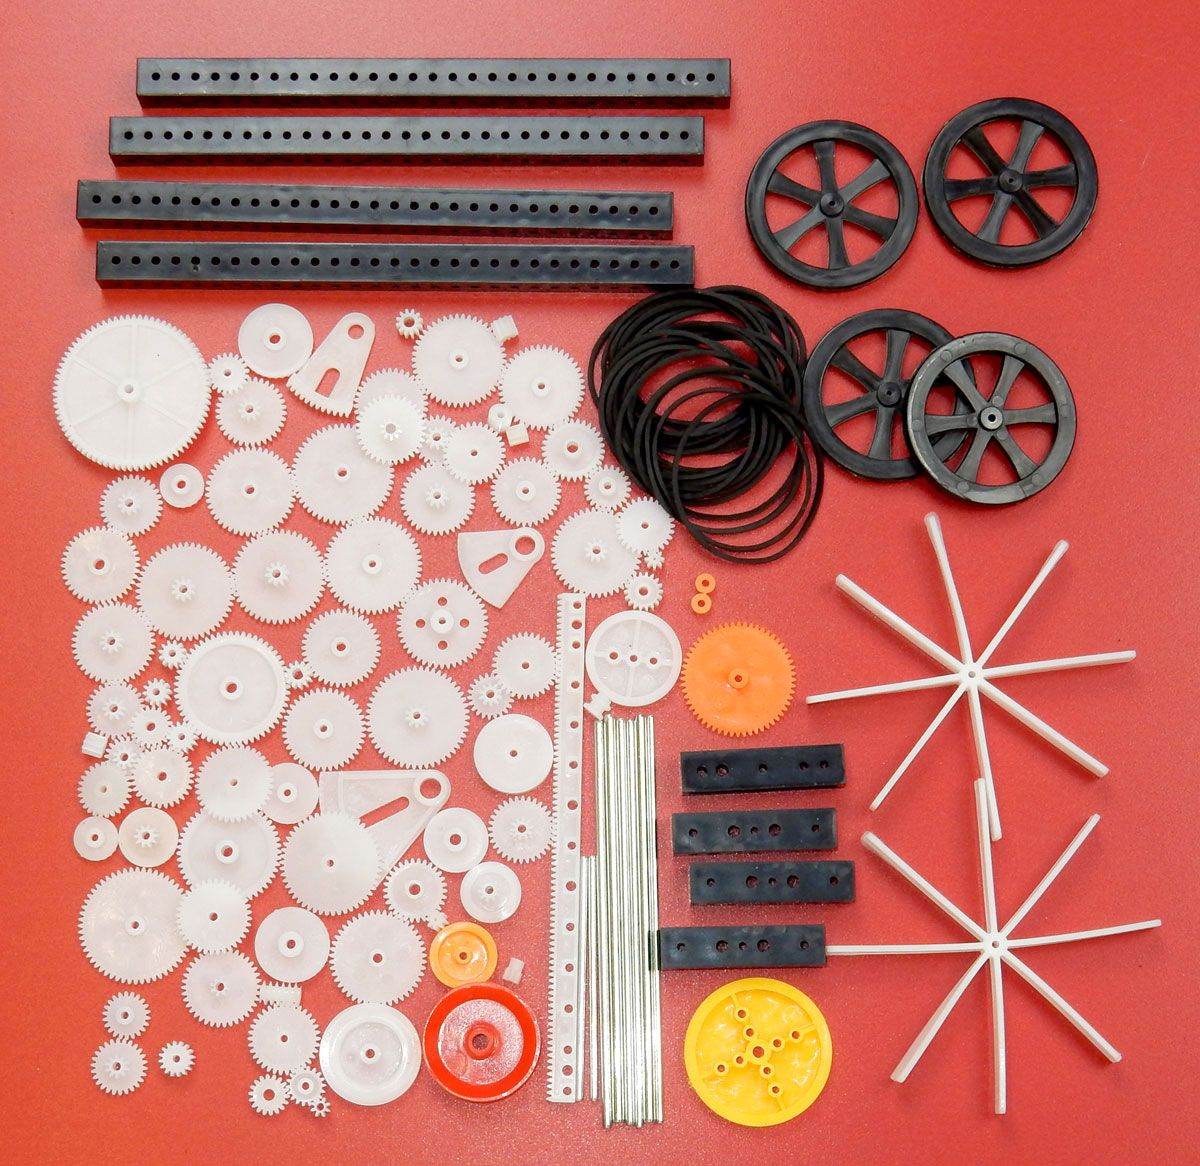 92 PIECE ASSORTMENT OF GEARS, PULLEYS, AXLES ETC.